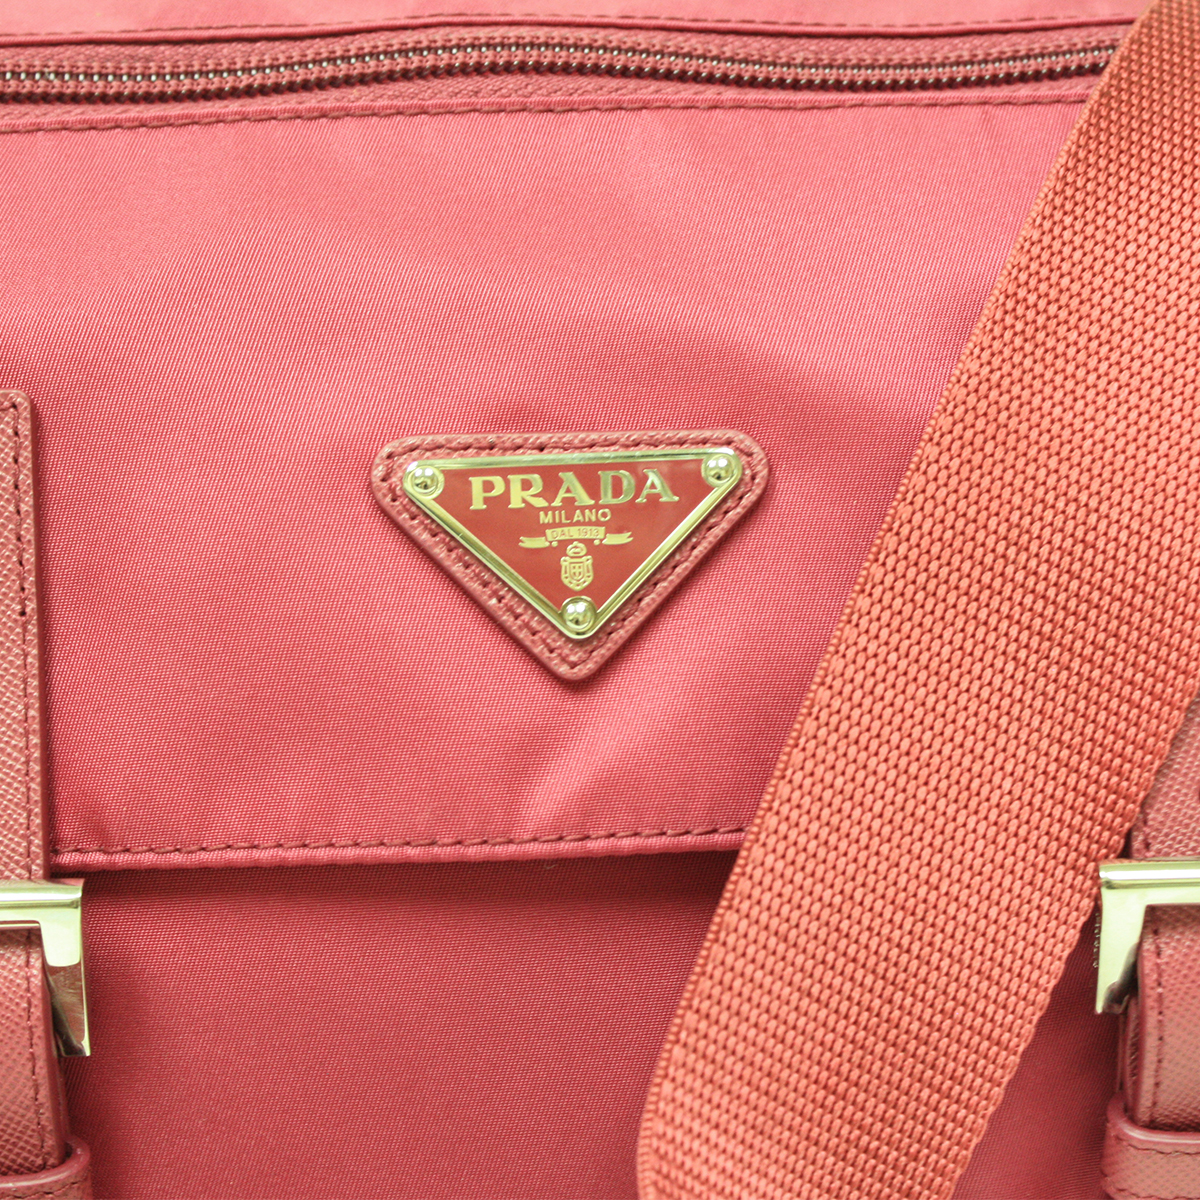 prada knockoffs purses - Prada Pink Tessuto Pattina Leather Crossbody Messenger Bag BT0953 ...